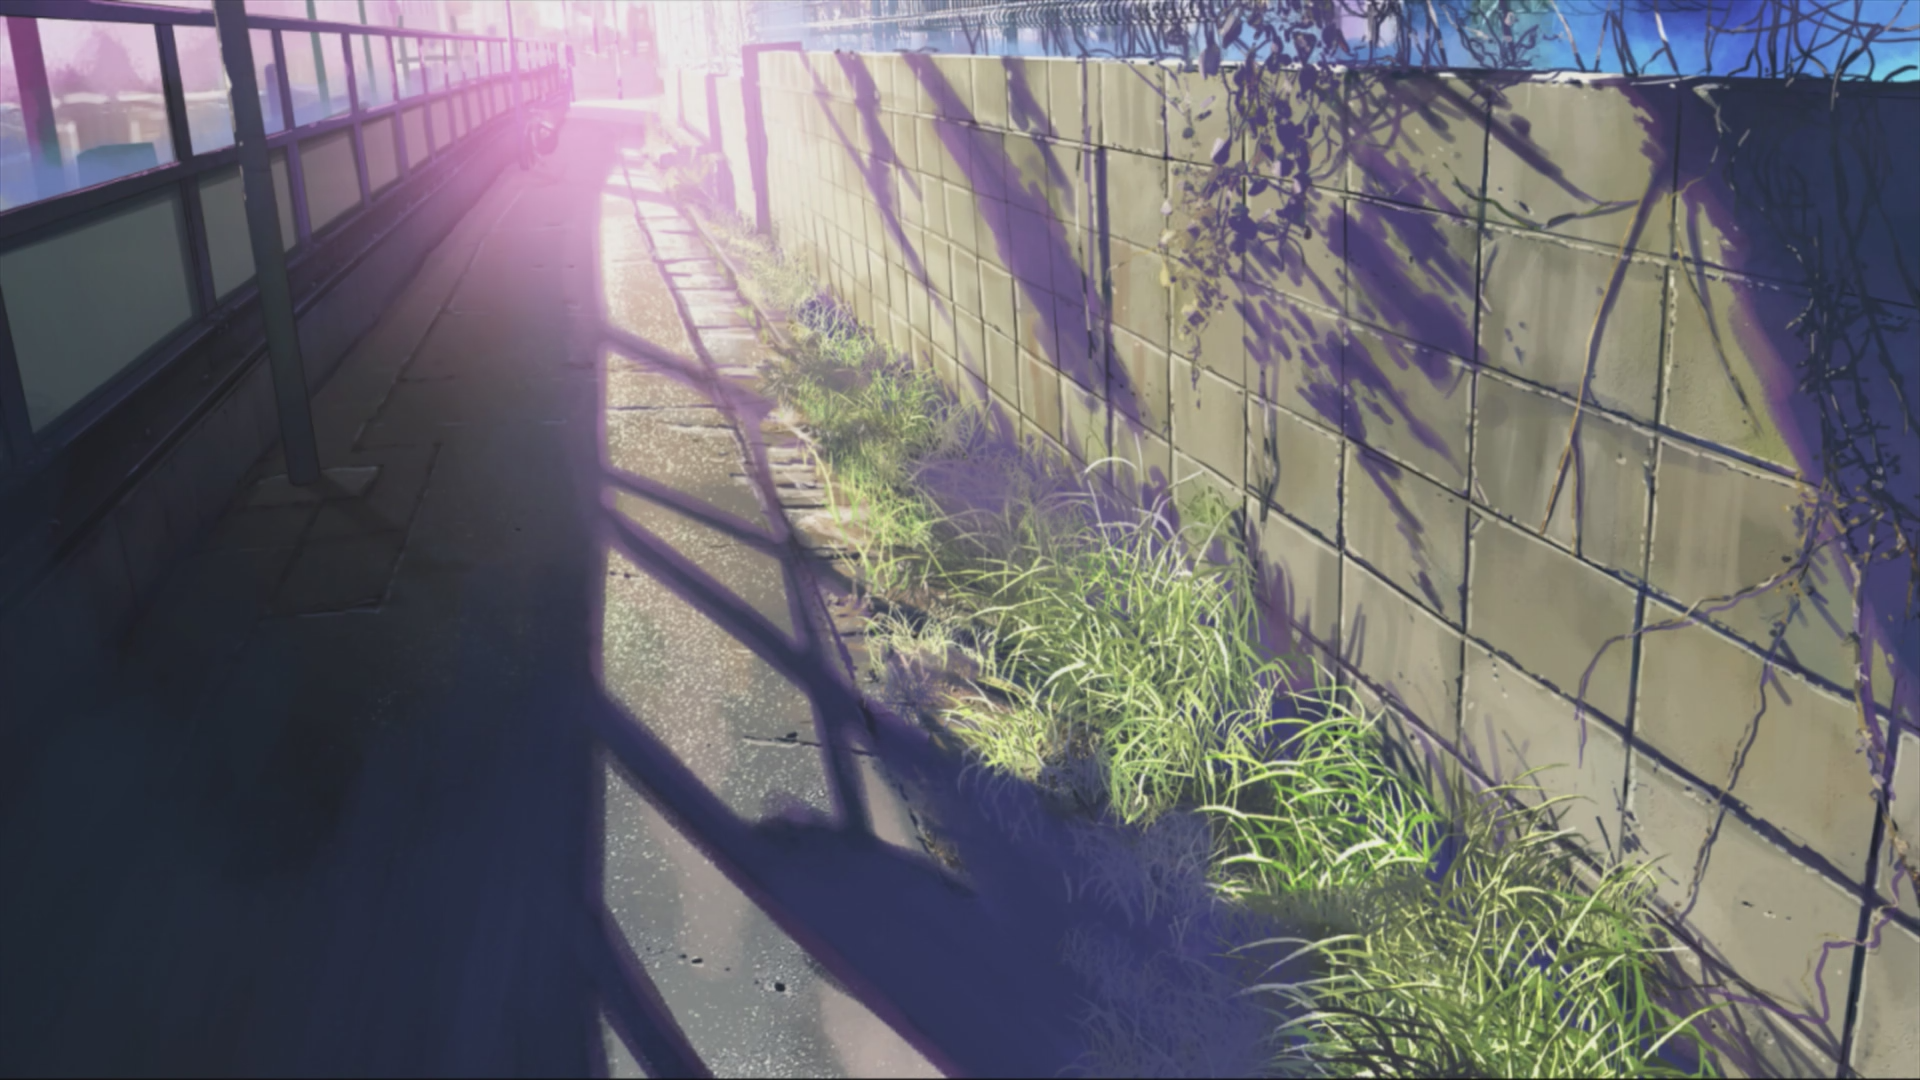 Five Centimeters Per Second Wallpaper Posted By Christopher Mercado